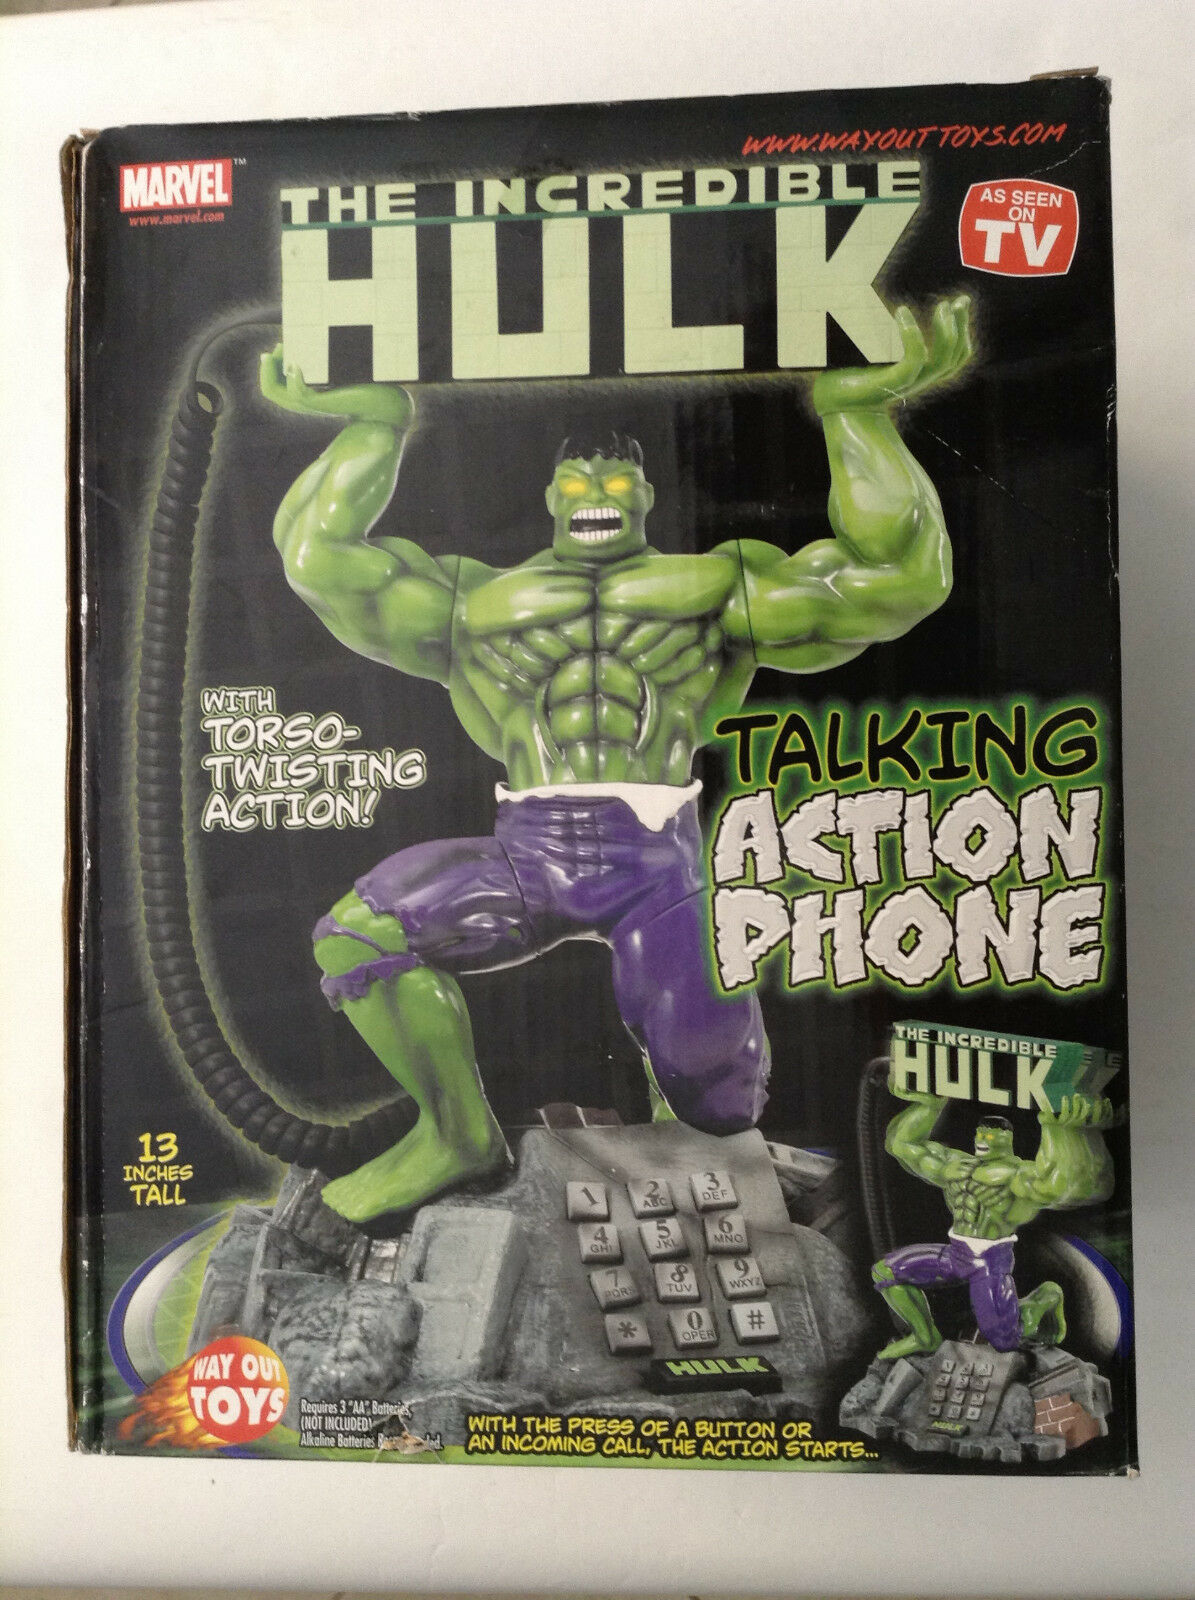 INCREDIBLE HULK TALKING ACTION PHONE w TORSO TWISTING ACTION 13  MARVEL(AVENGERS